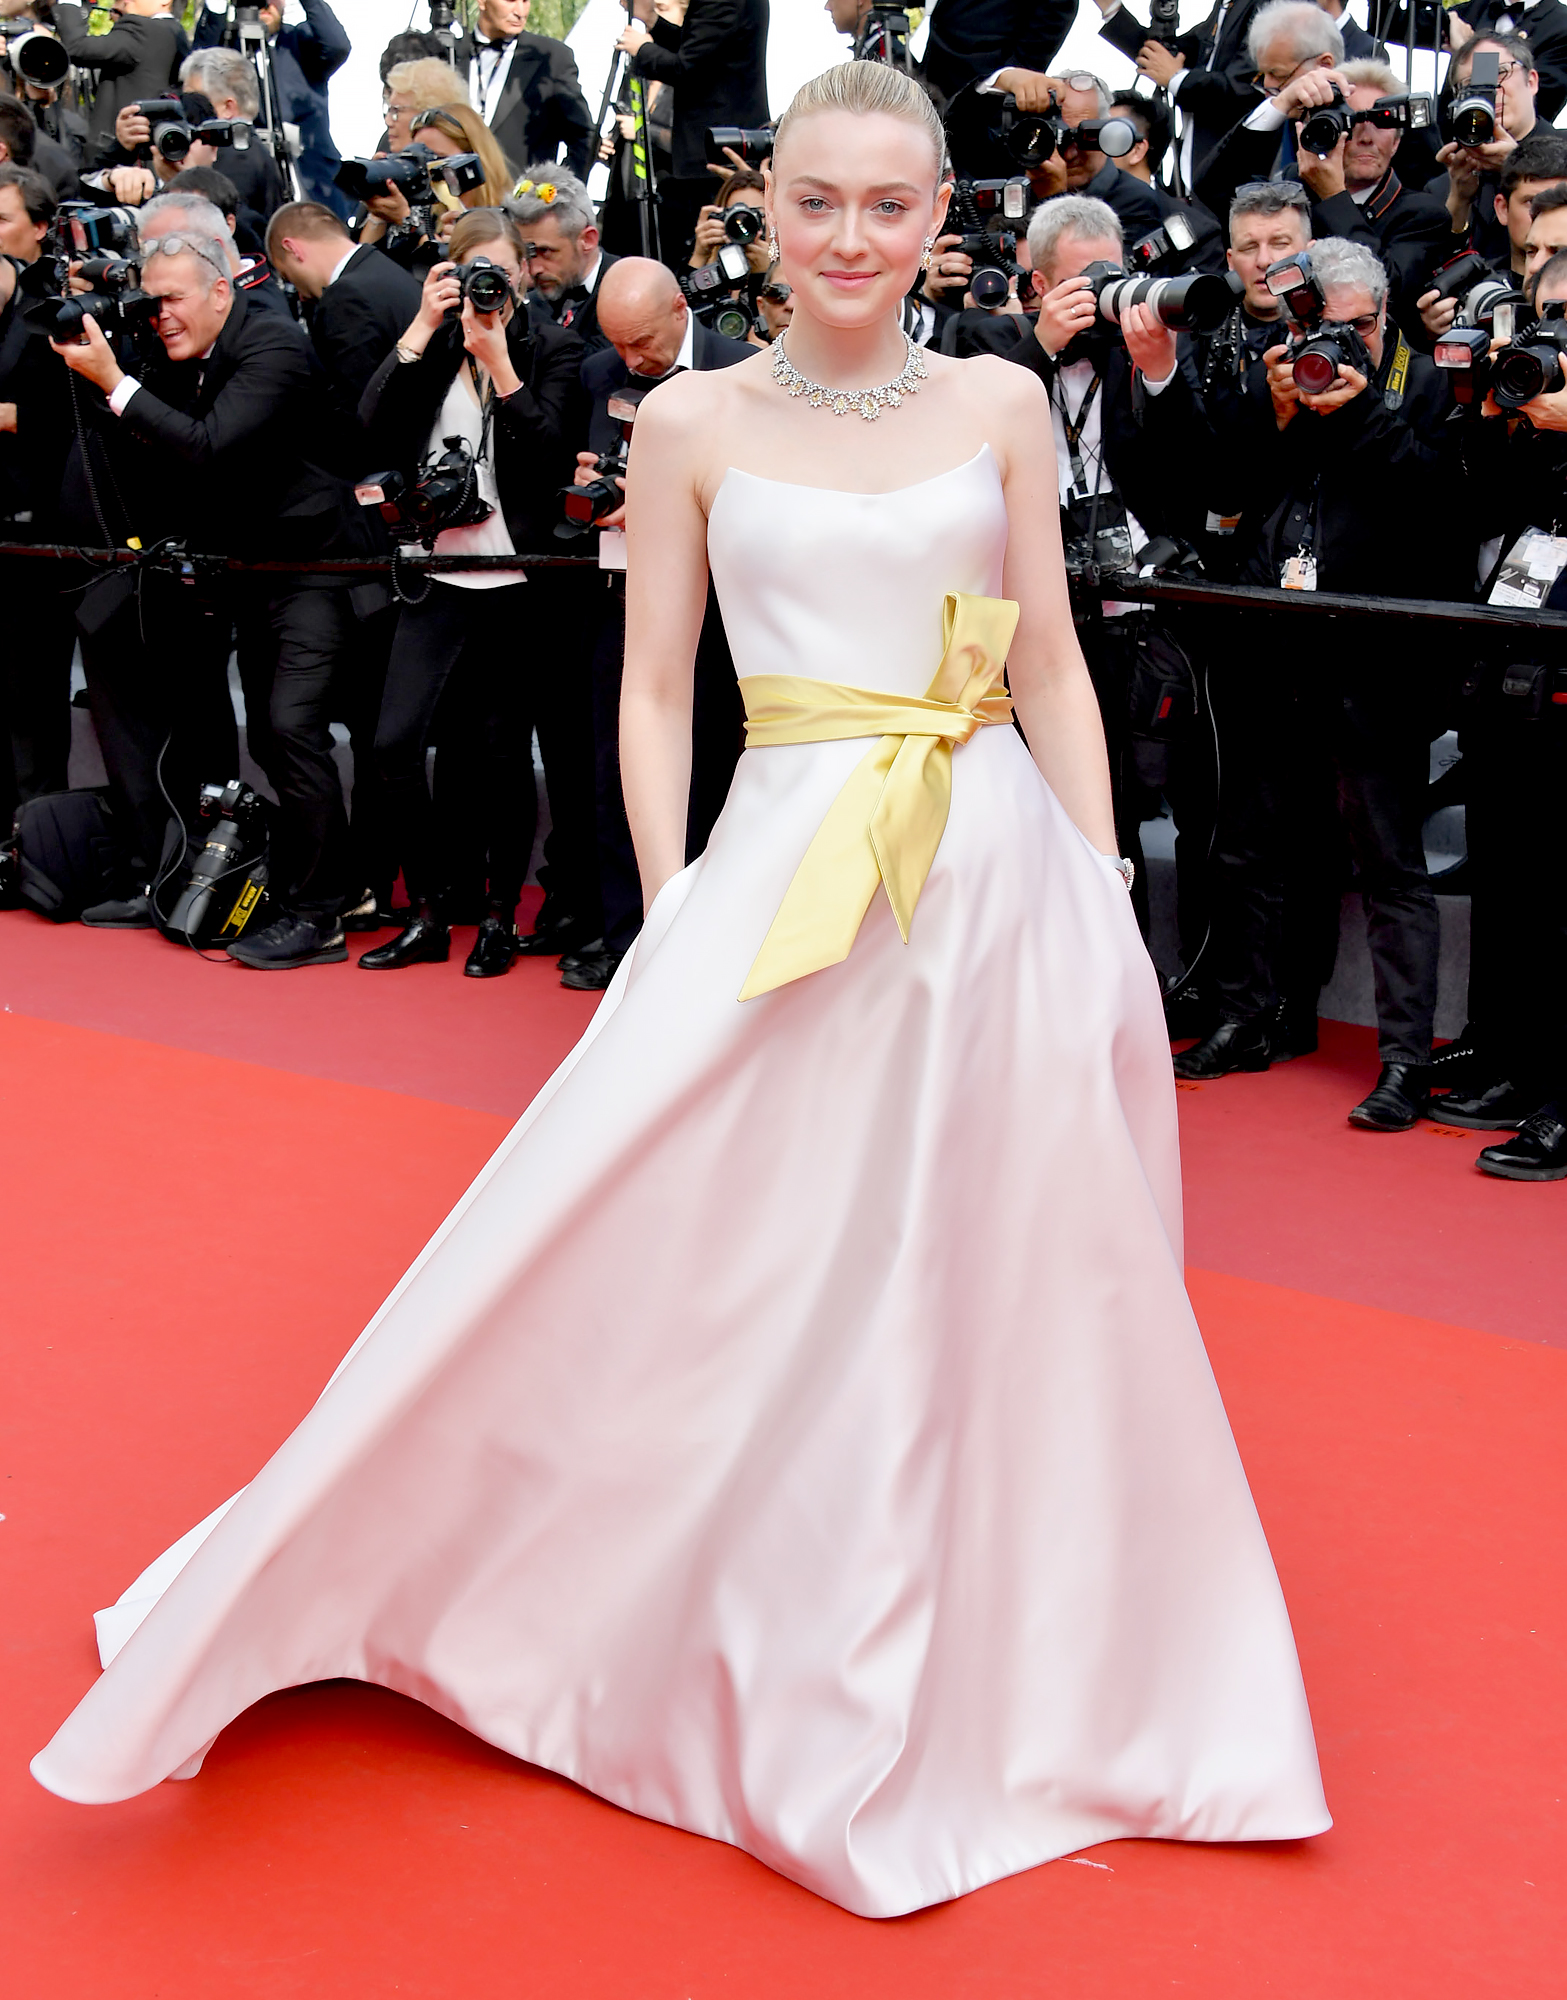 Dakota-Fanning - A yellow sash brightened up the blonde beauty's white strapless Armani gown at the Once Upon a Time in Hollywood premiere on Tuesday, May 21.